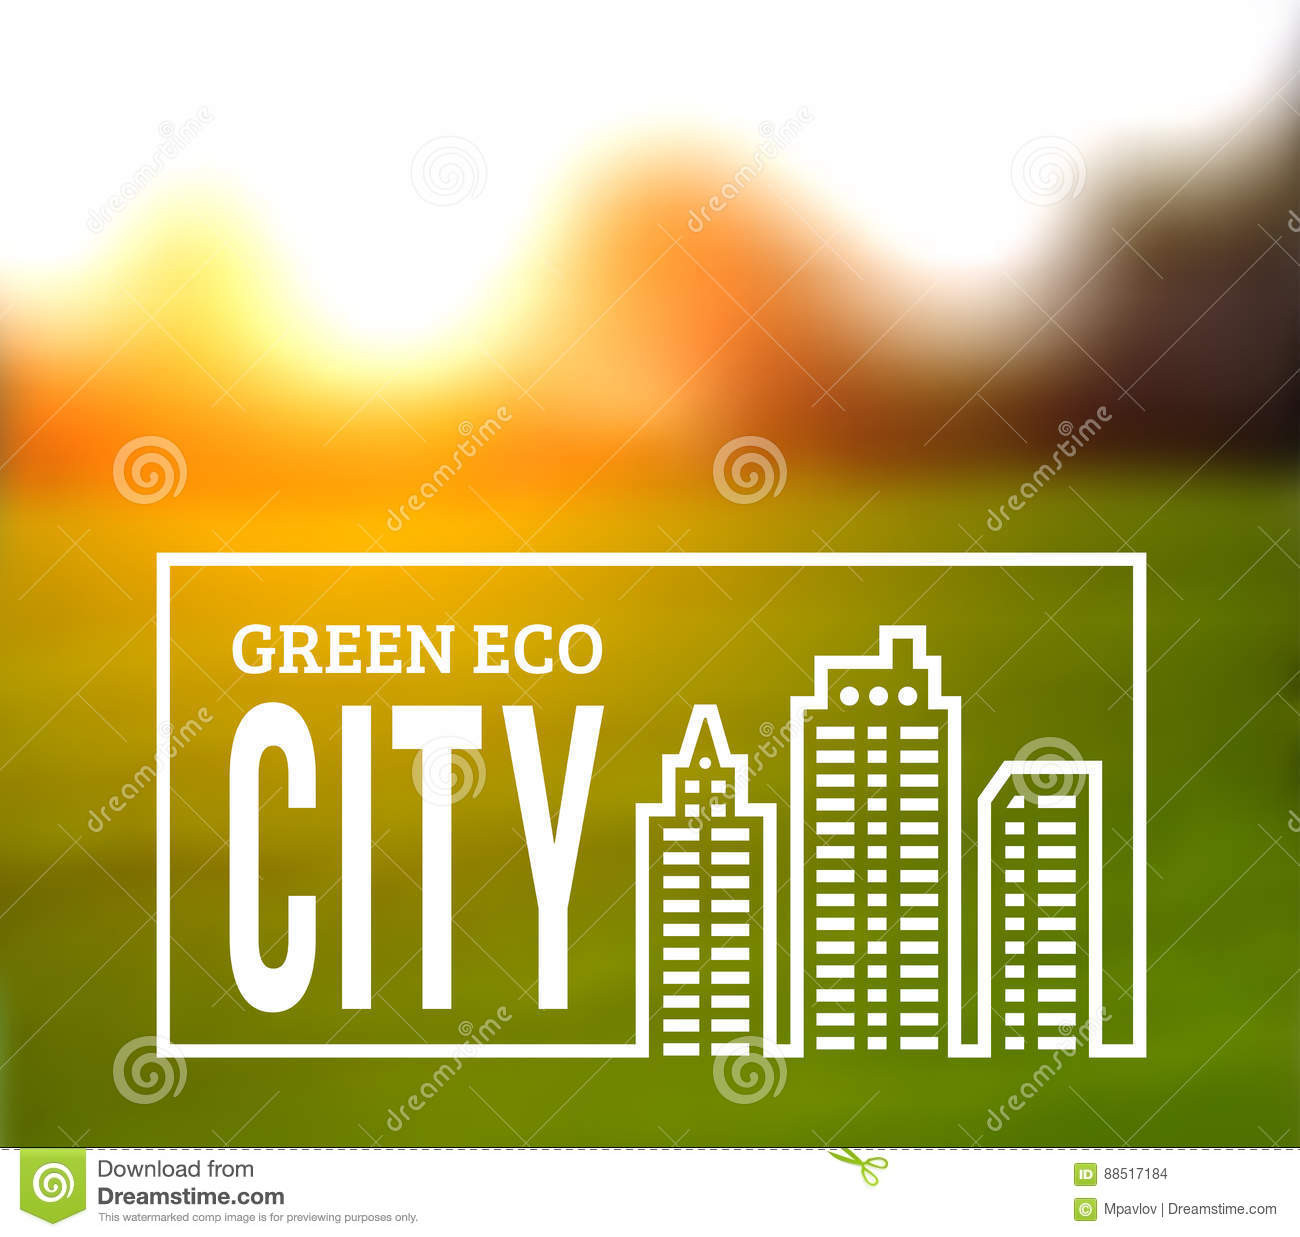 clean city green city speech Free essays on clean city green city essay for class10 get help with your writing 1 through 30.